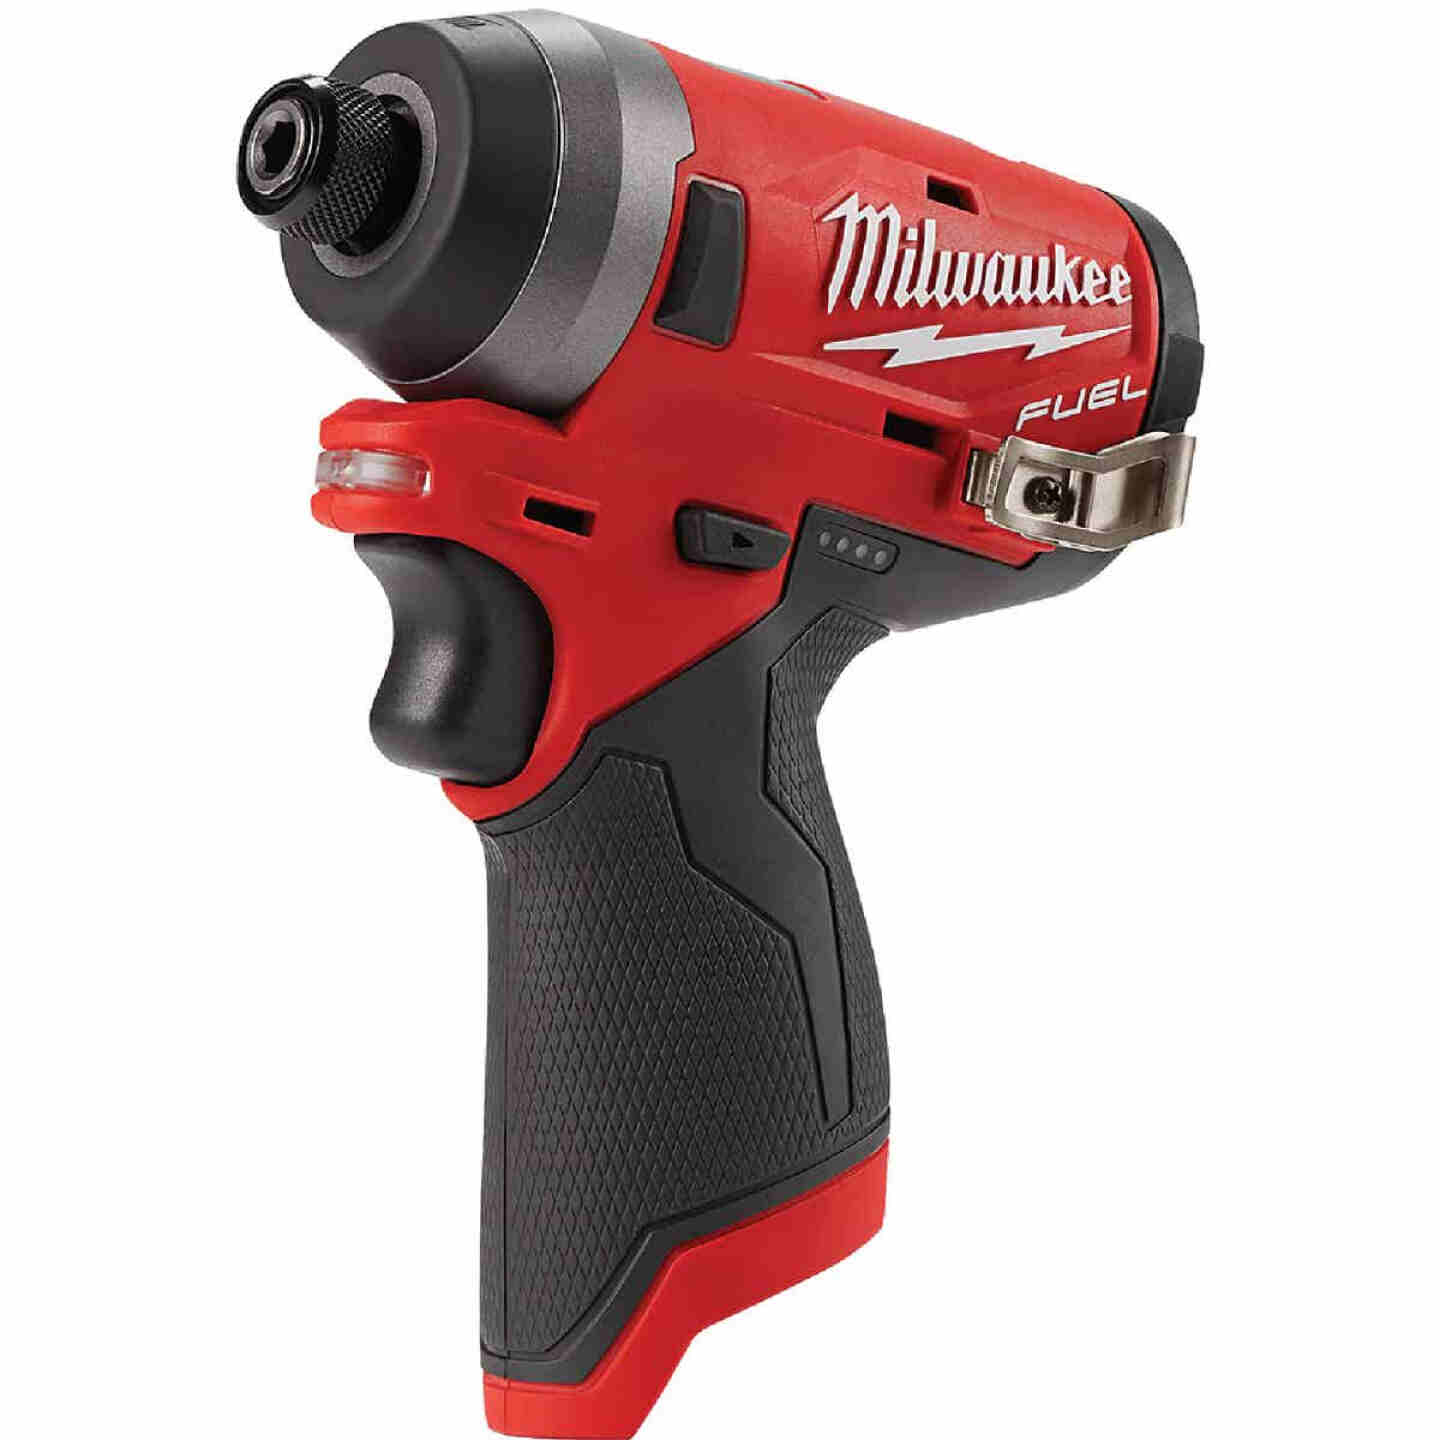 Milwaukee M12 FUEL 12 Volt Lithium-Ion Brushless 1/4 In. Hex Cordless Impact Driver (Bare Tool) Image 1